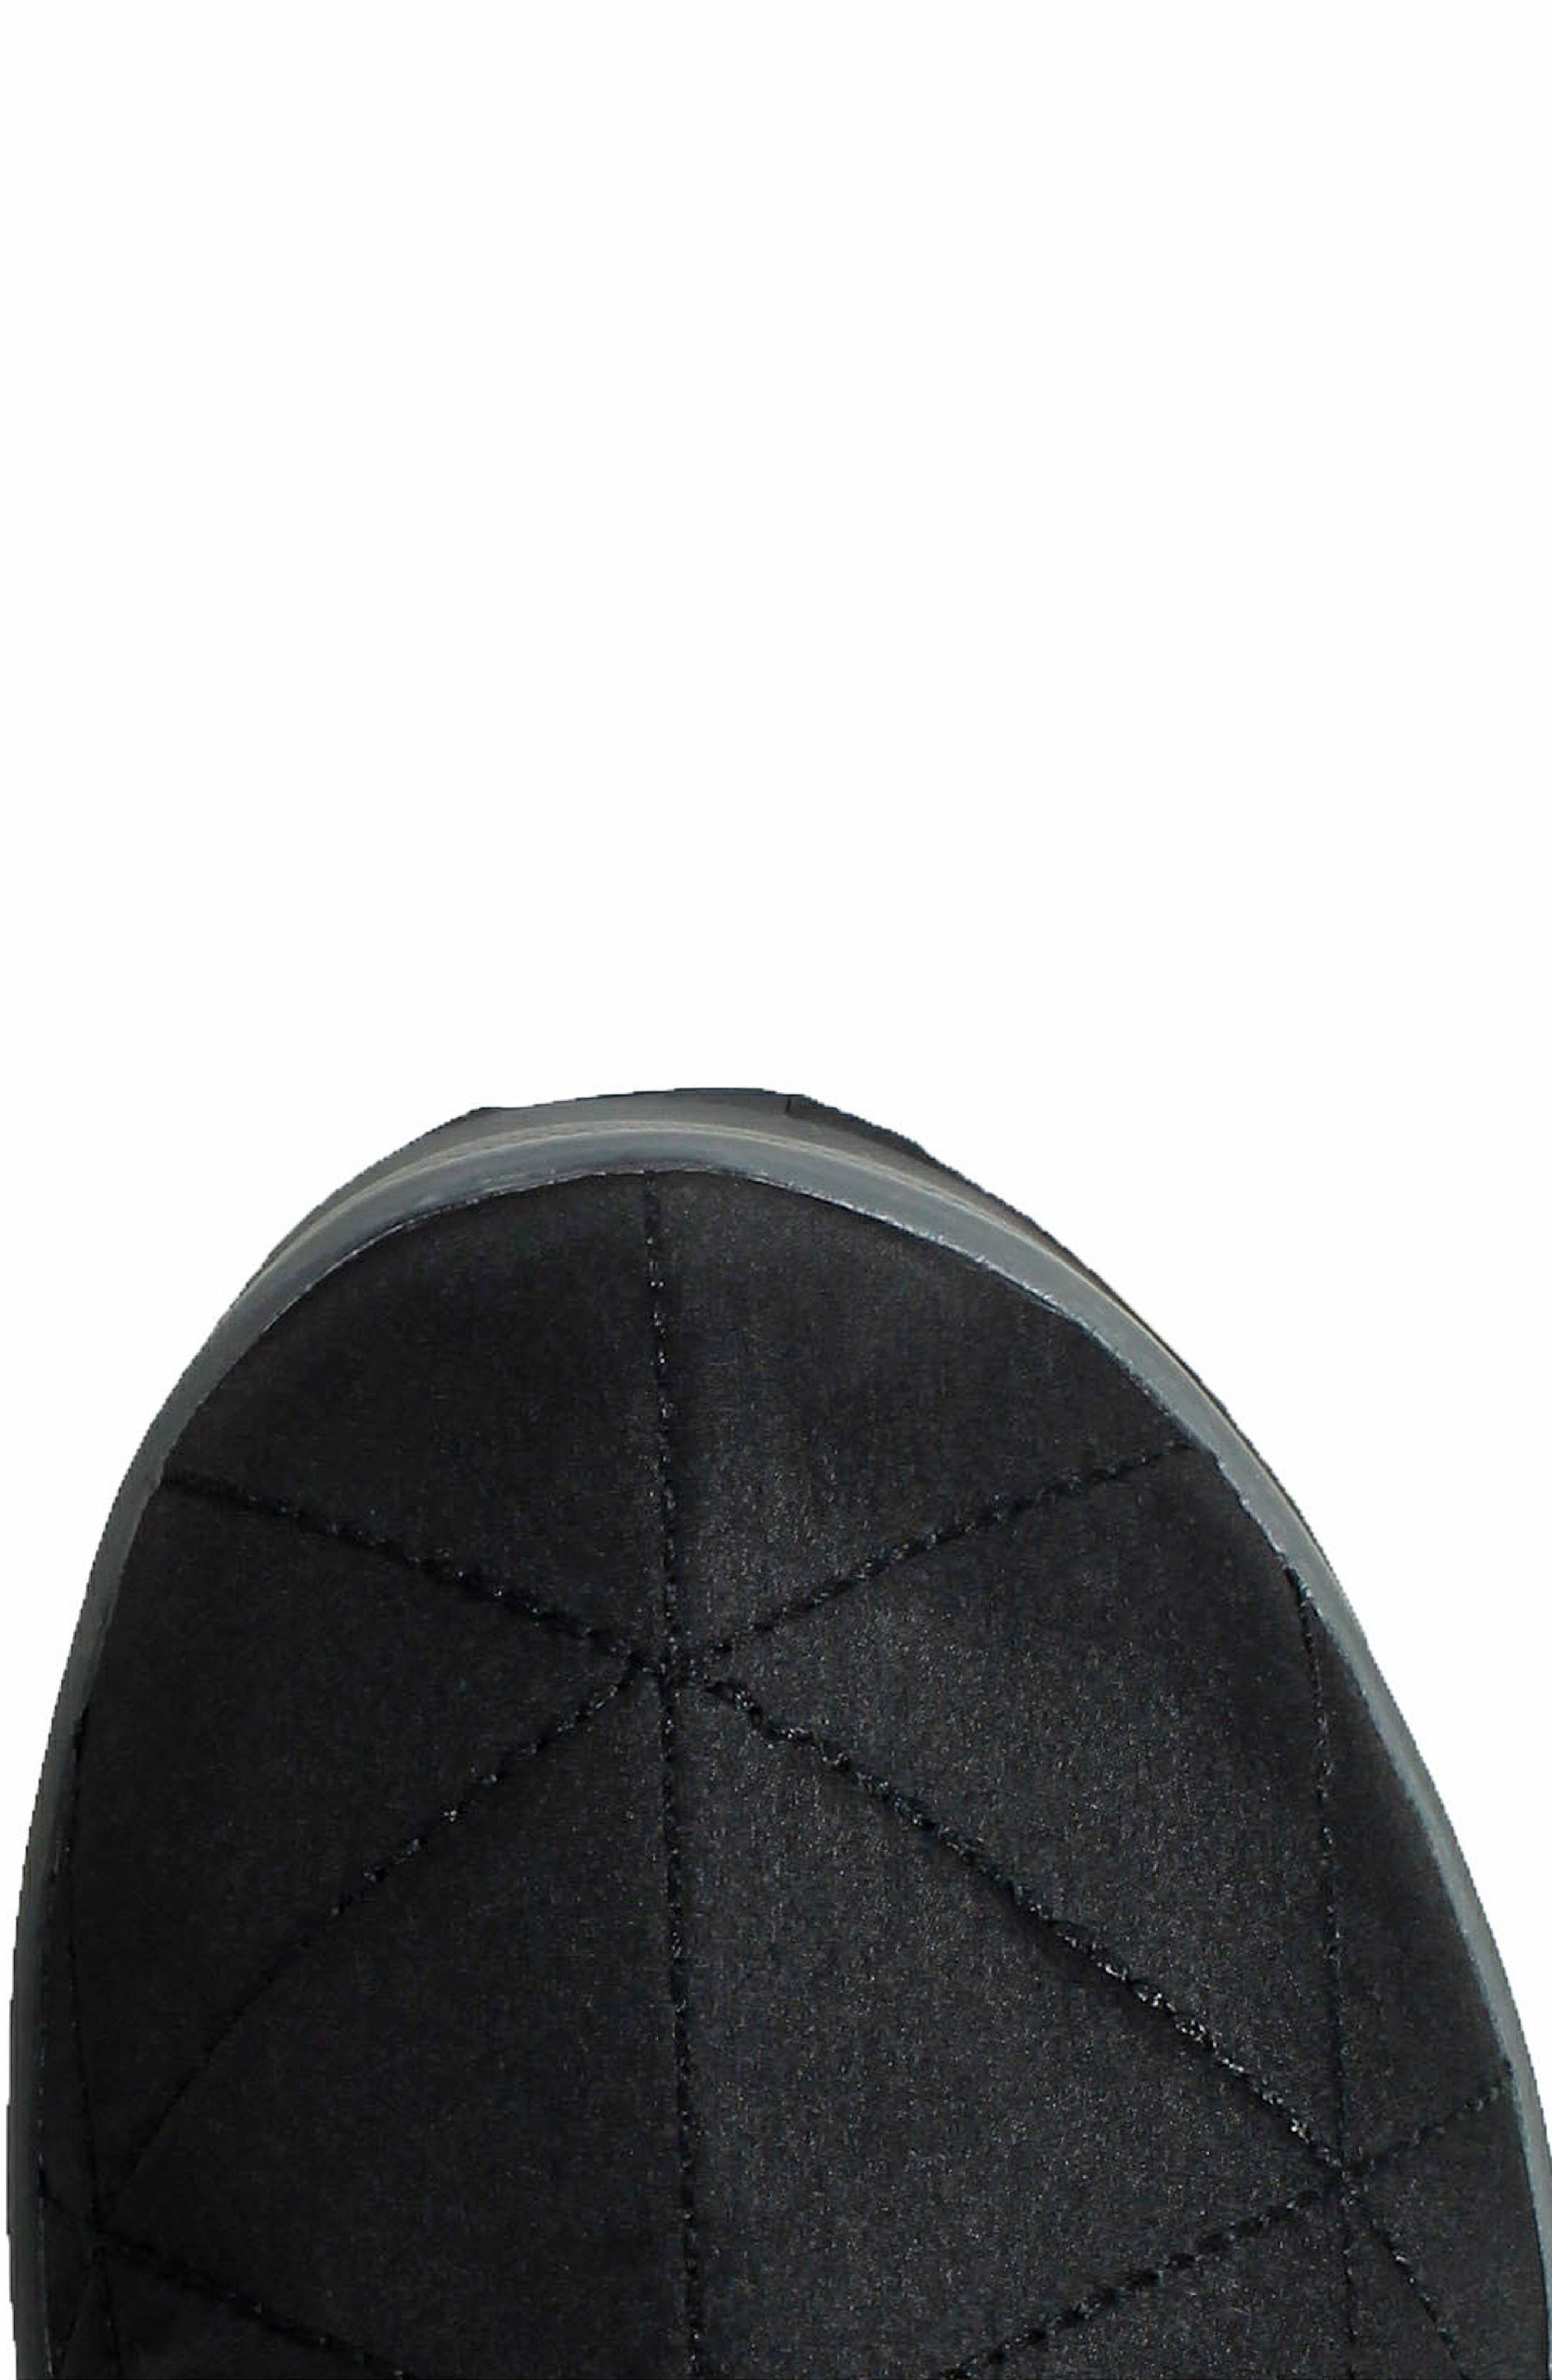 BOGS, Snowday Tall Waterproof Quilted Snow Boot, Alternate thumbnail 5, color, BLACK